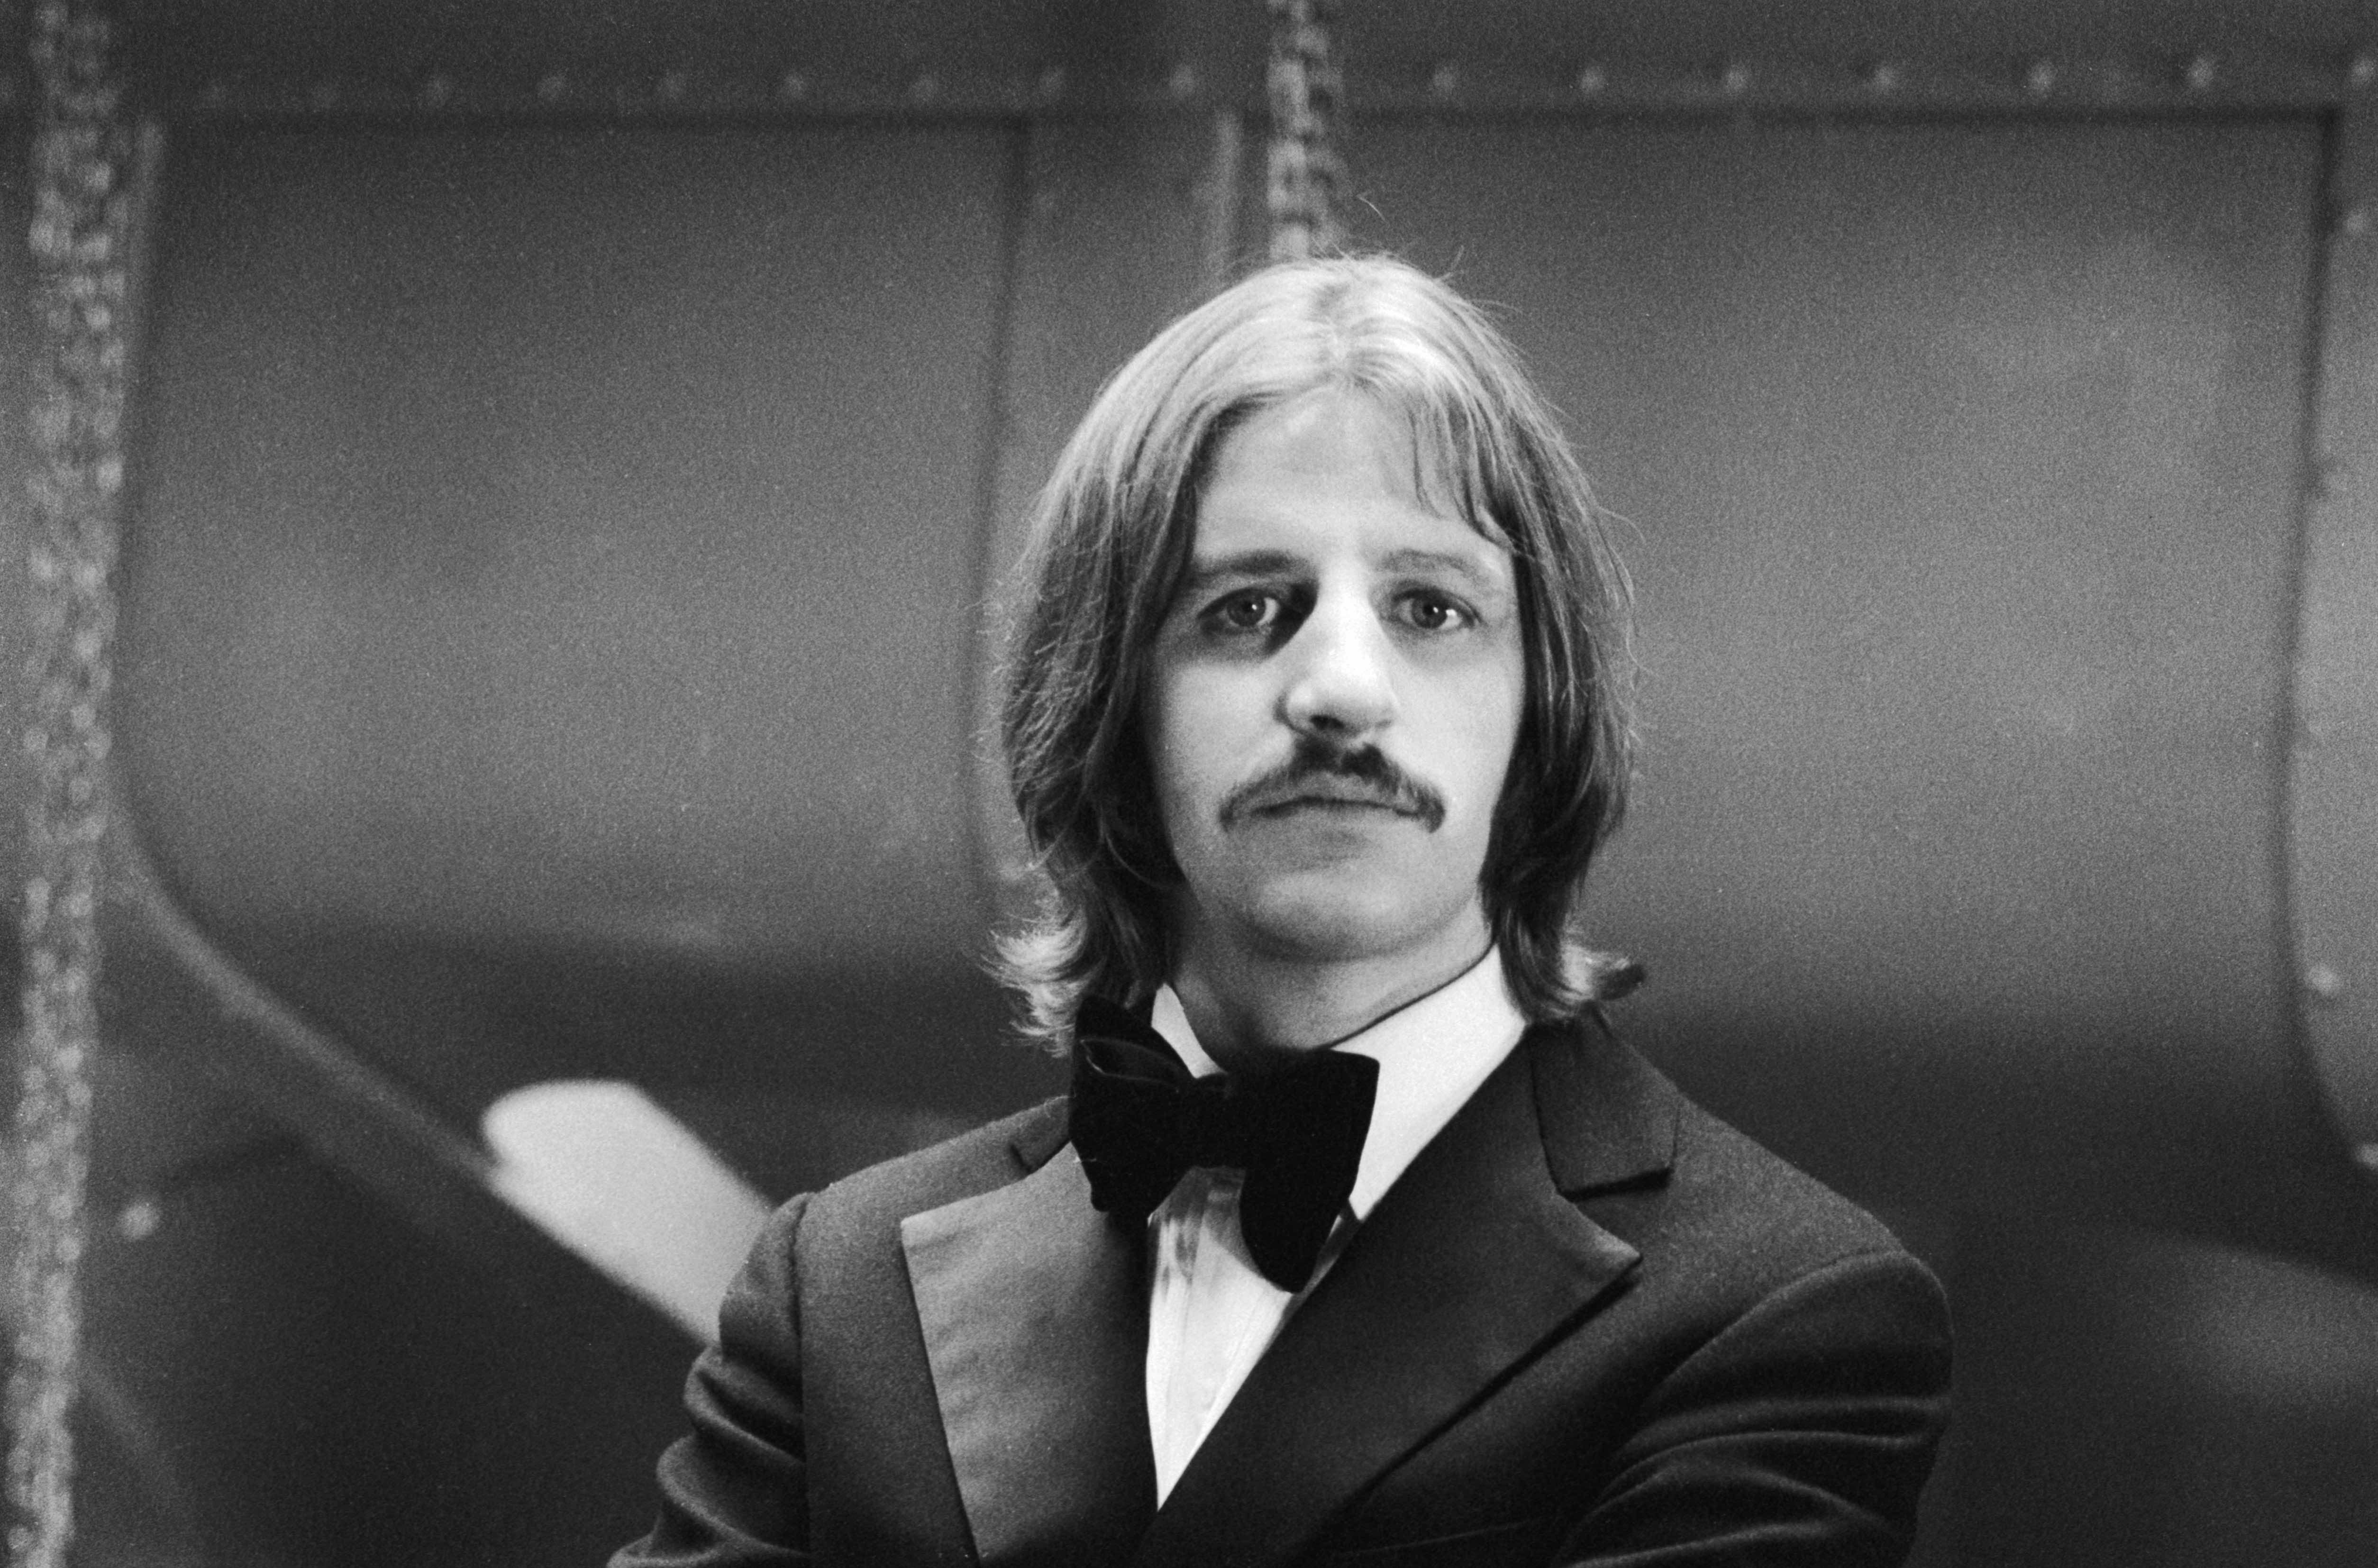 Ringo Starr On The Set Of Magic Christian Directed By Joseph McGrath 1969 Plays Character Youngman Grand In Film